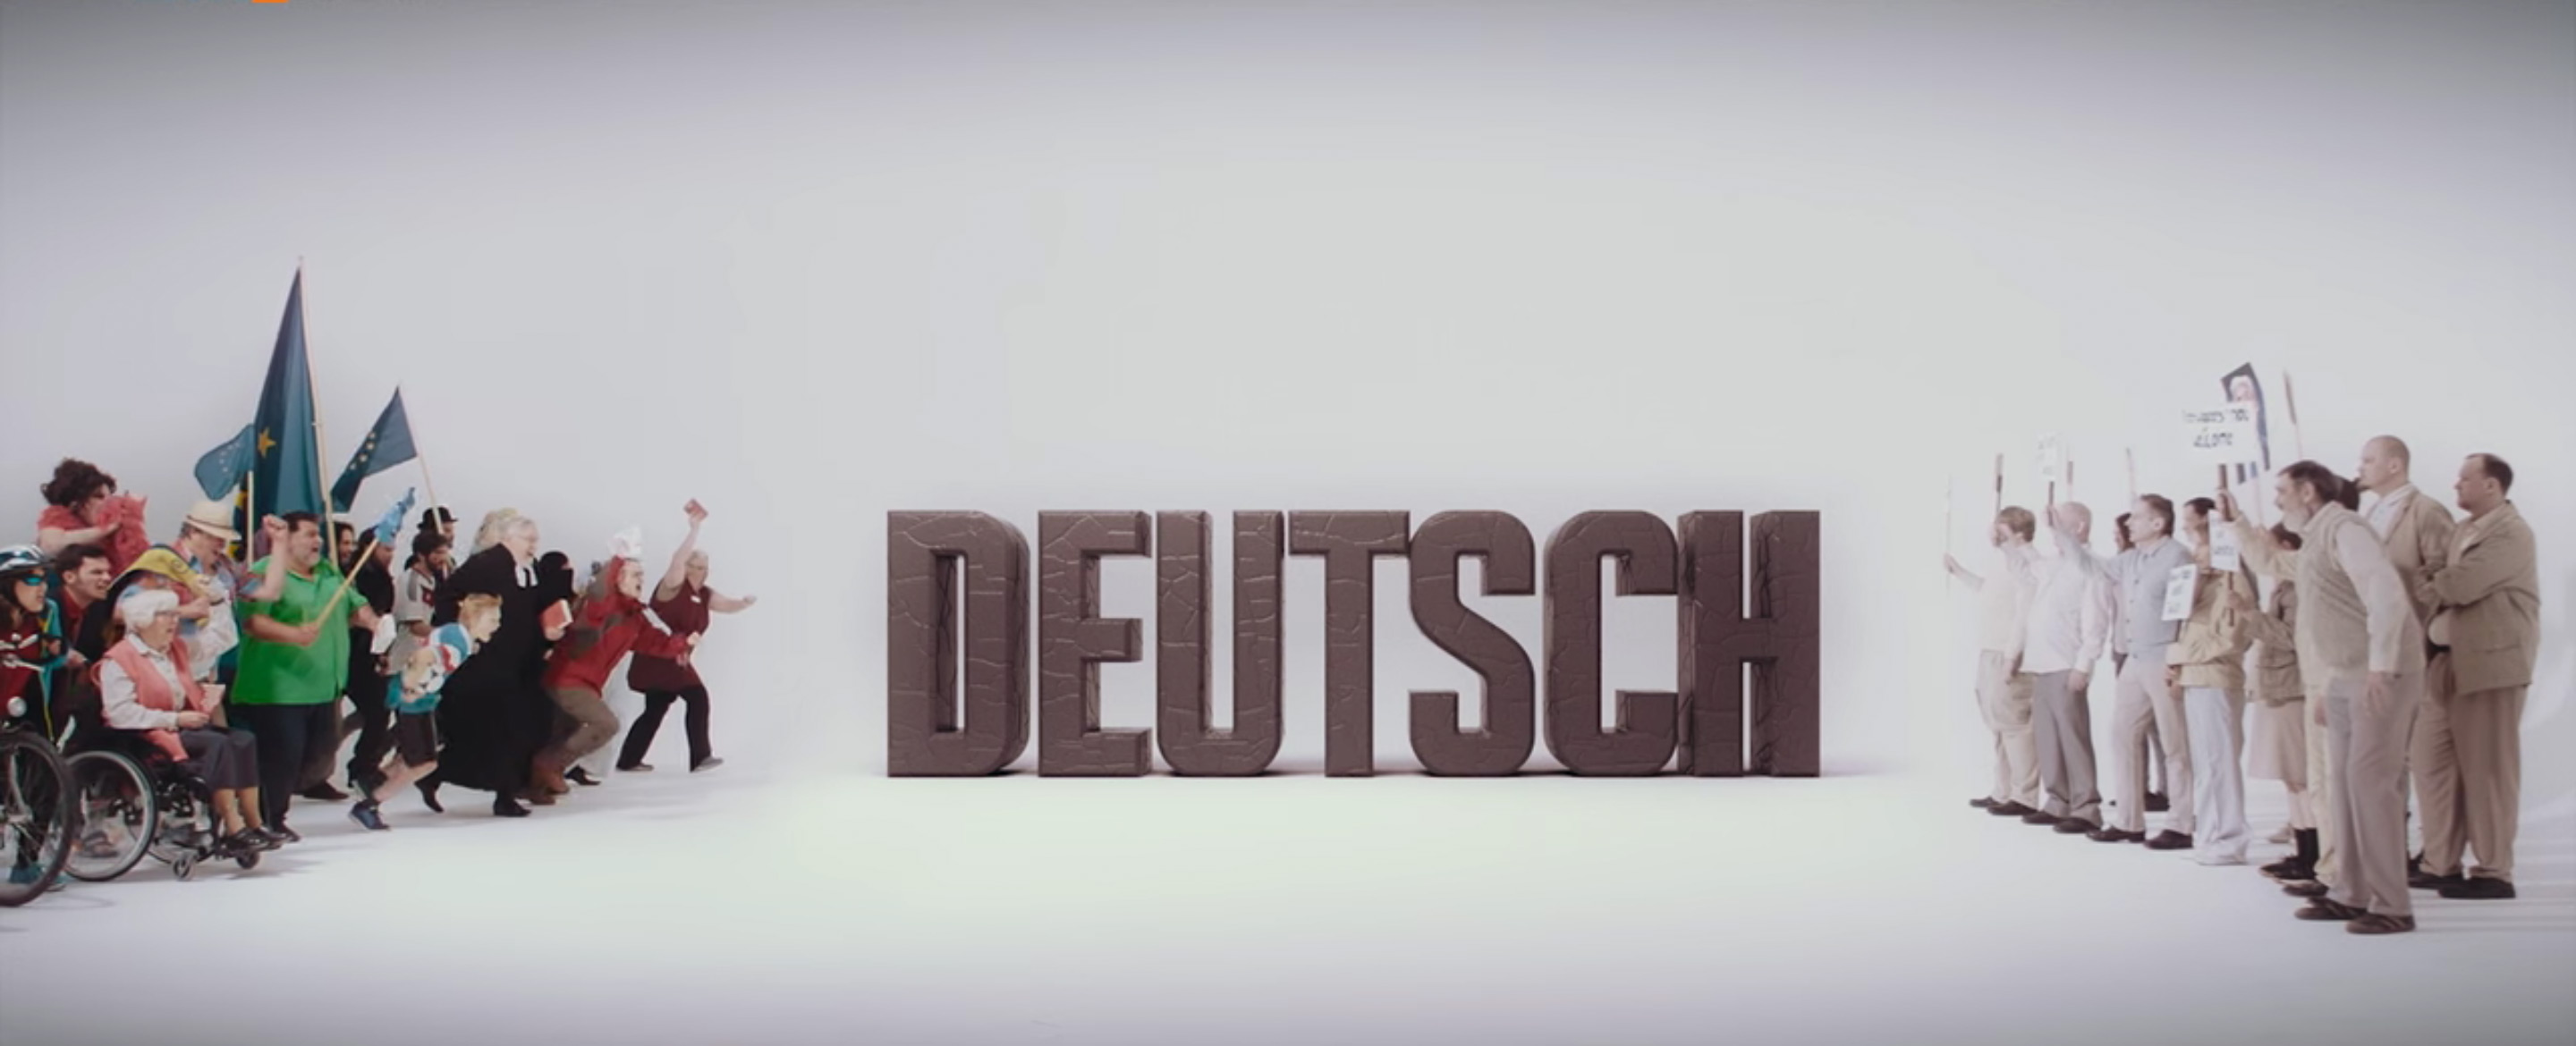 BE-DEUTSCH